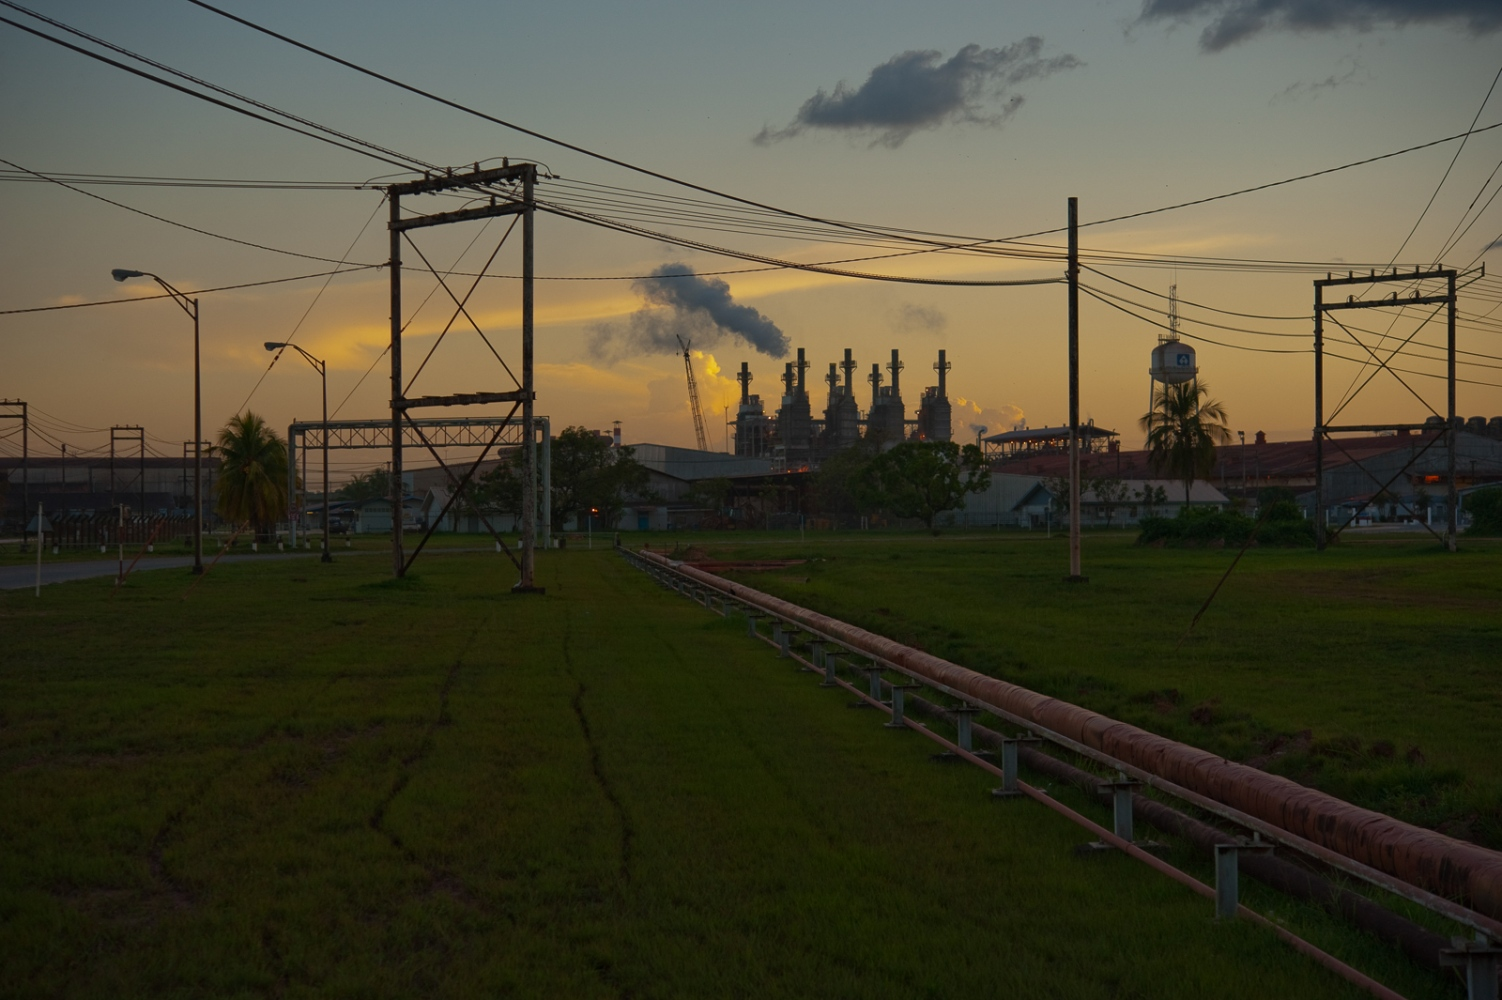 Electrical power lines and power staiion on the outskirts of Paramaribo